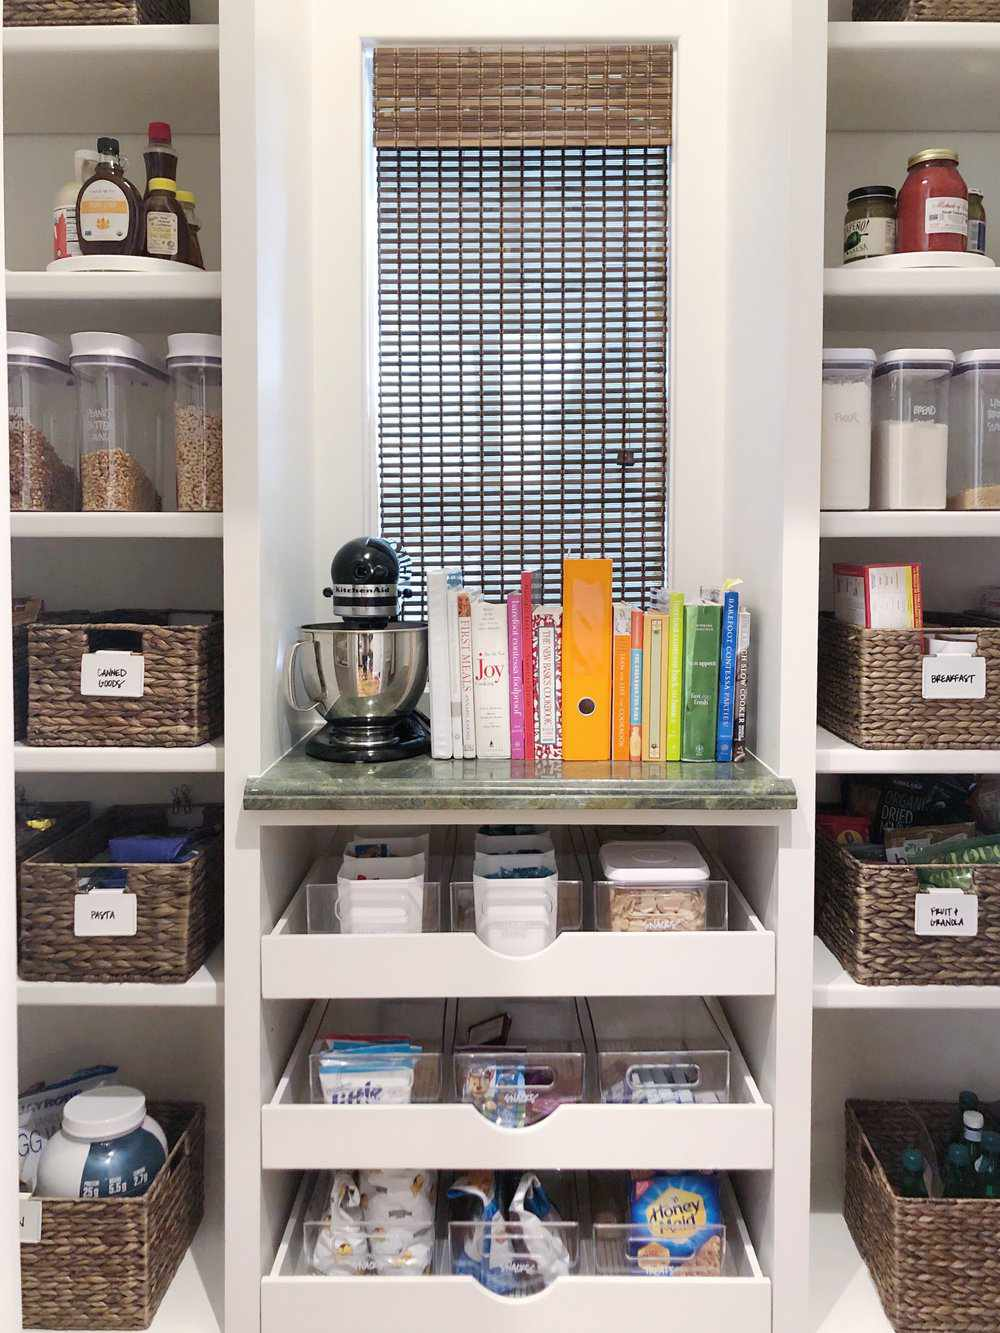 pantry with organized shelves, baskets and a table for cookbooks